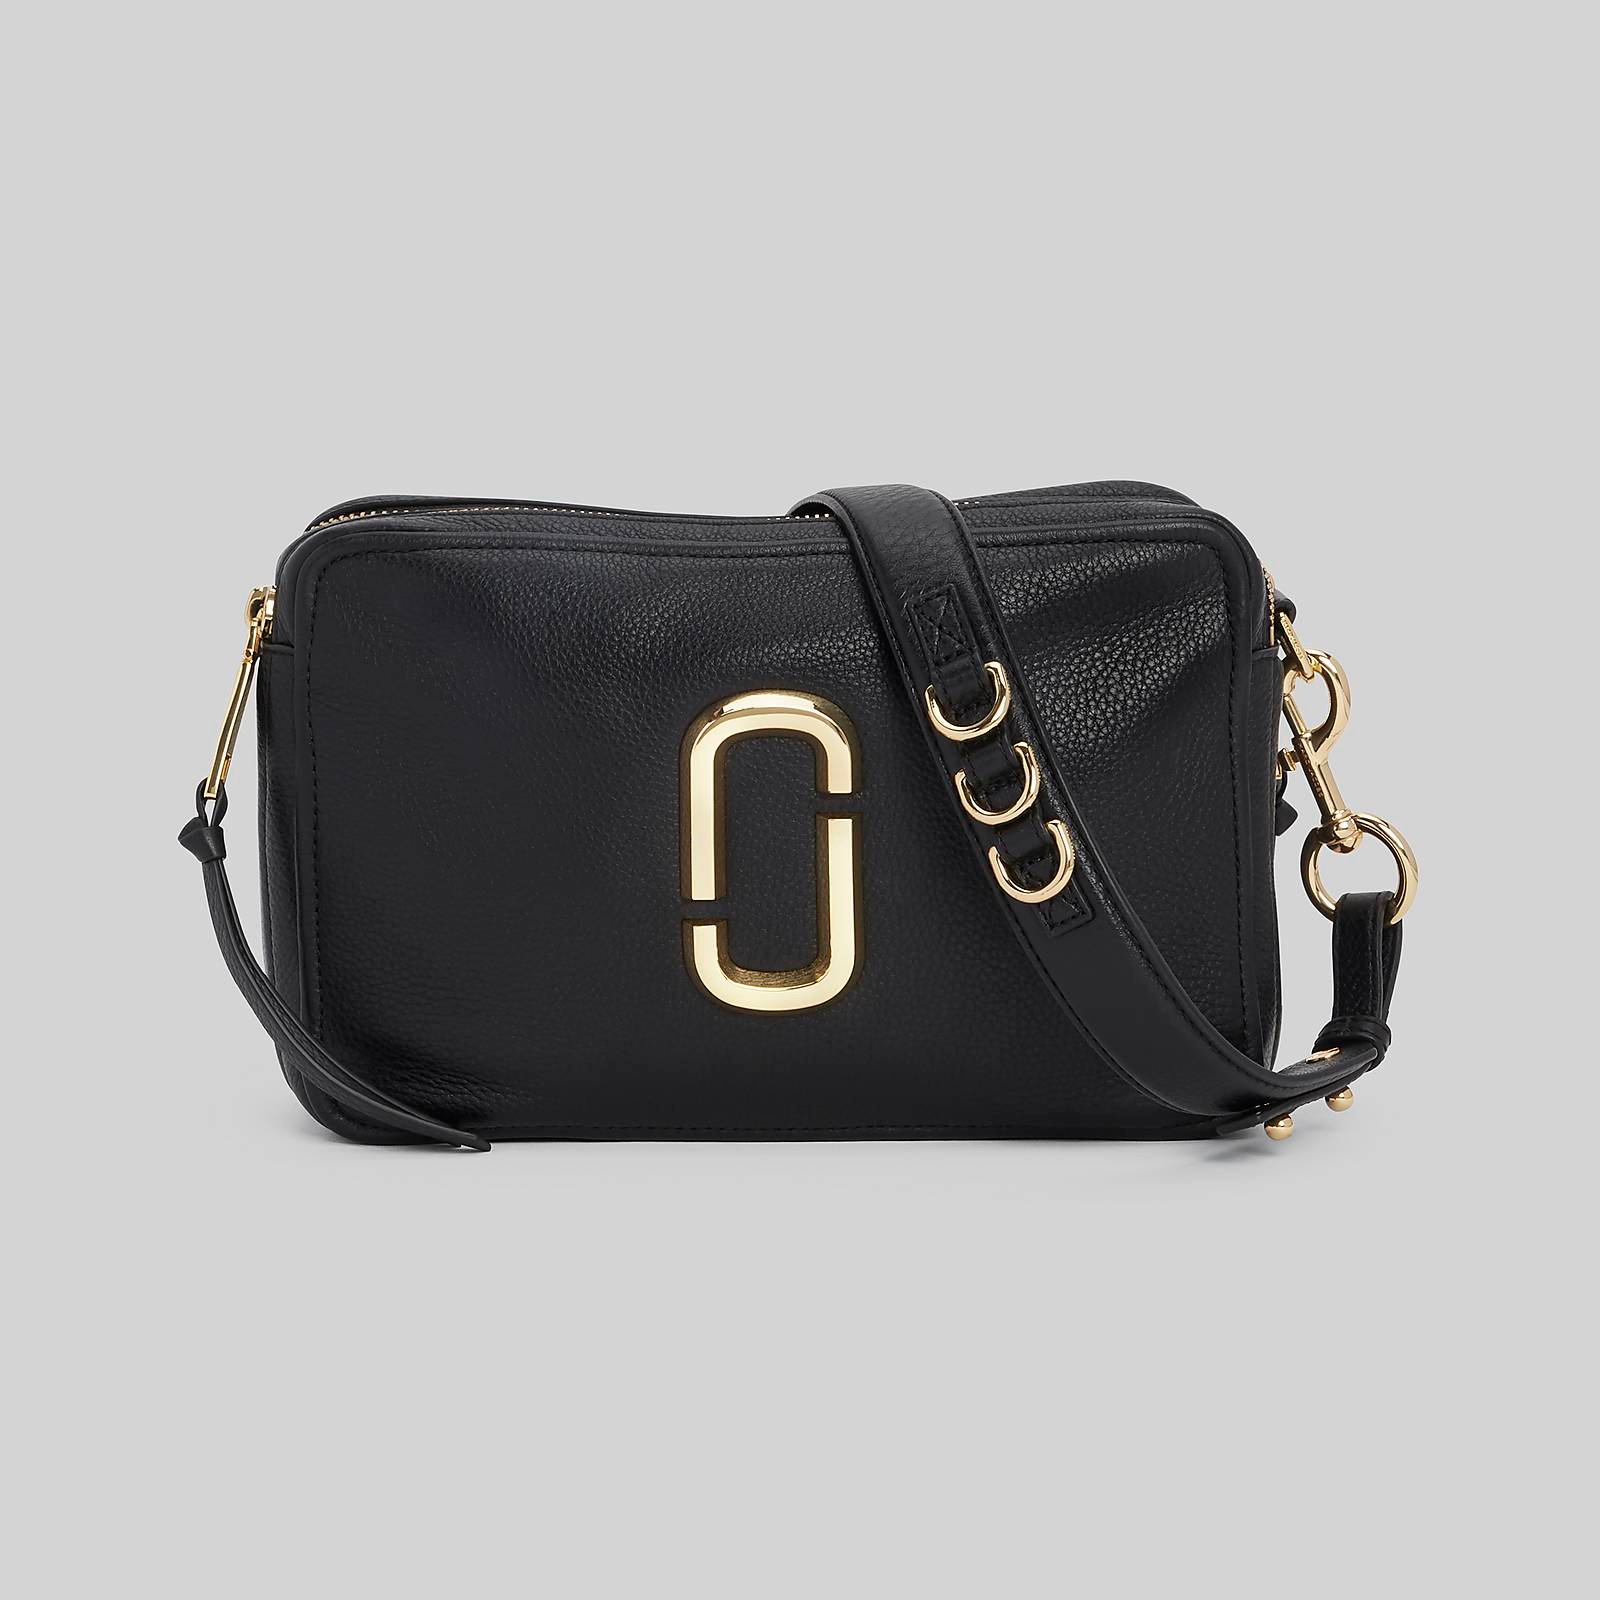 THE Softshot 27 Marc Jacobs in Black   Marc jacobs crossbody bag ...